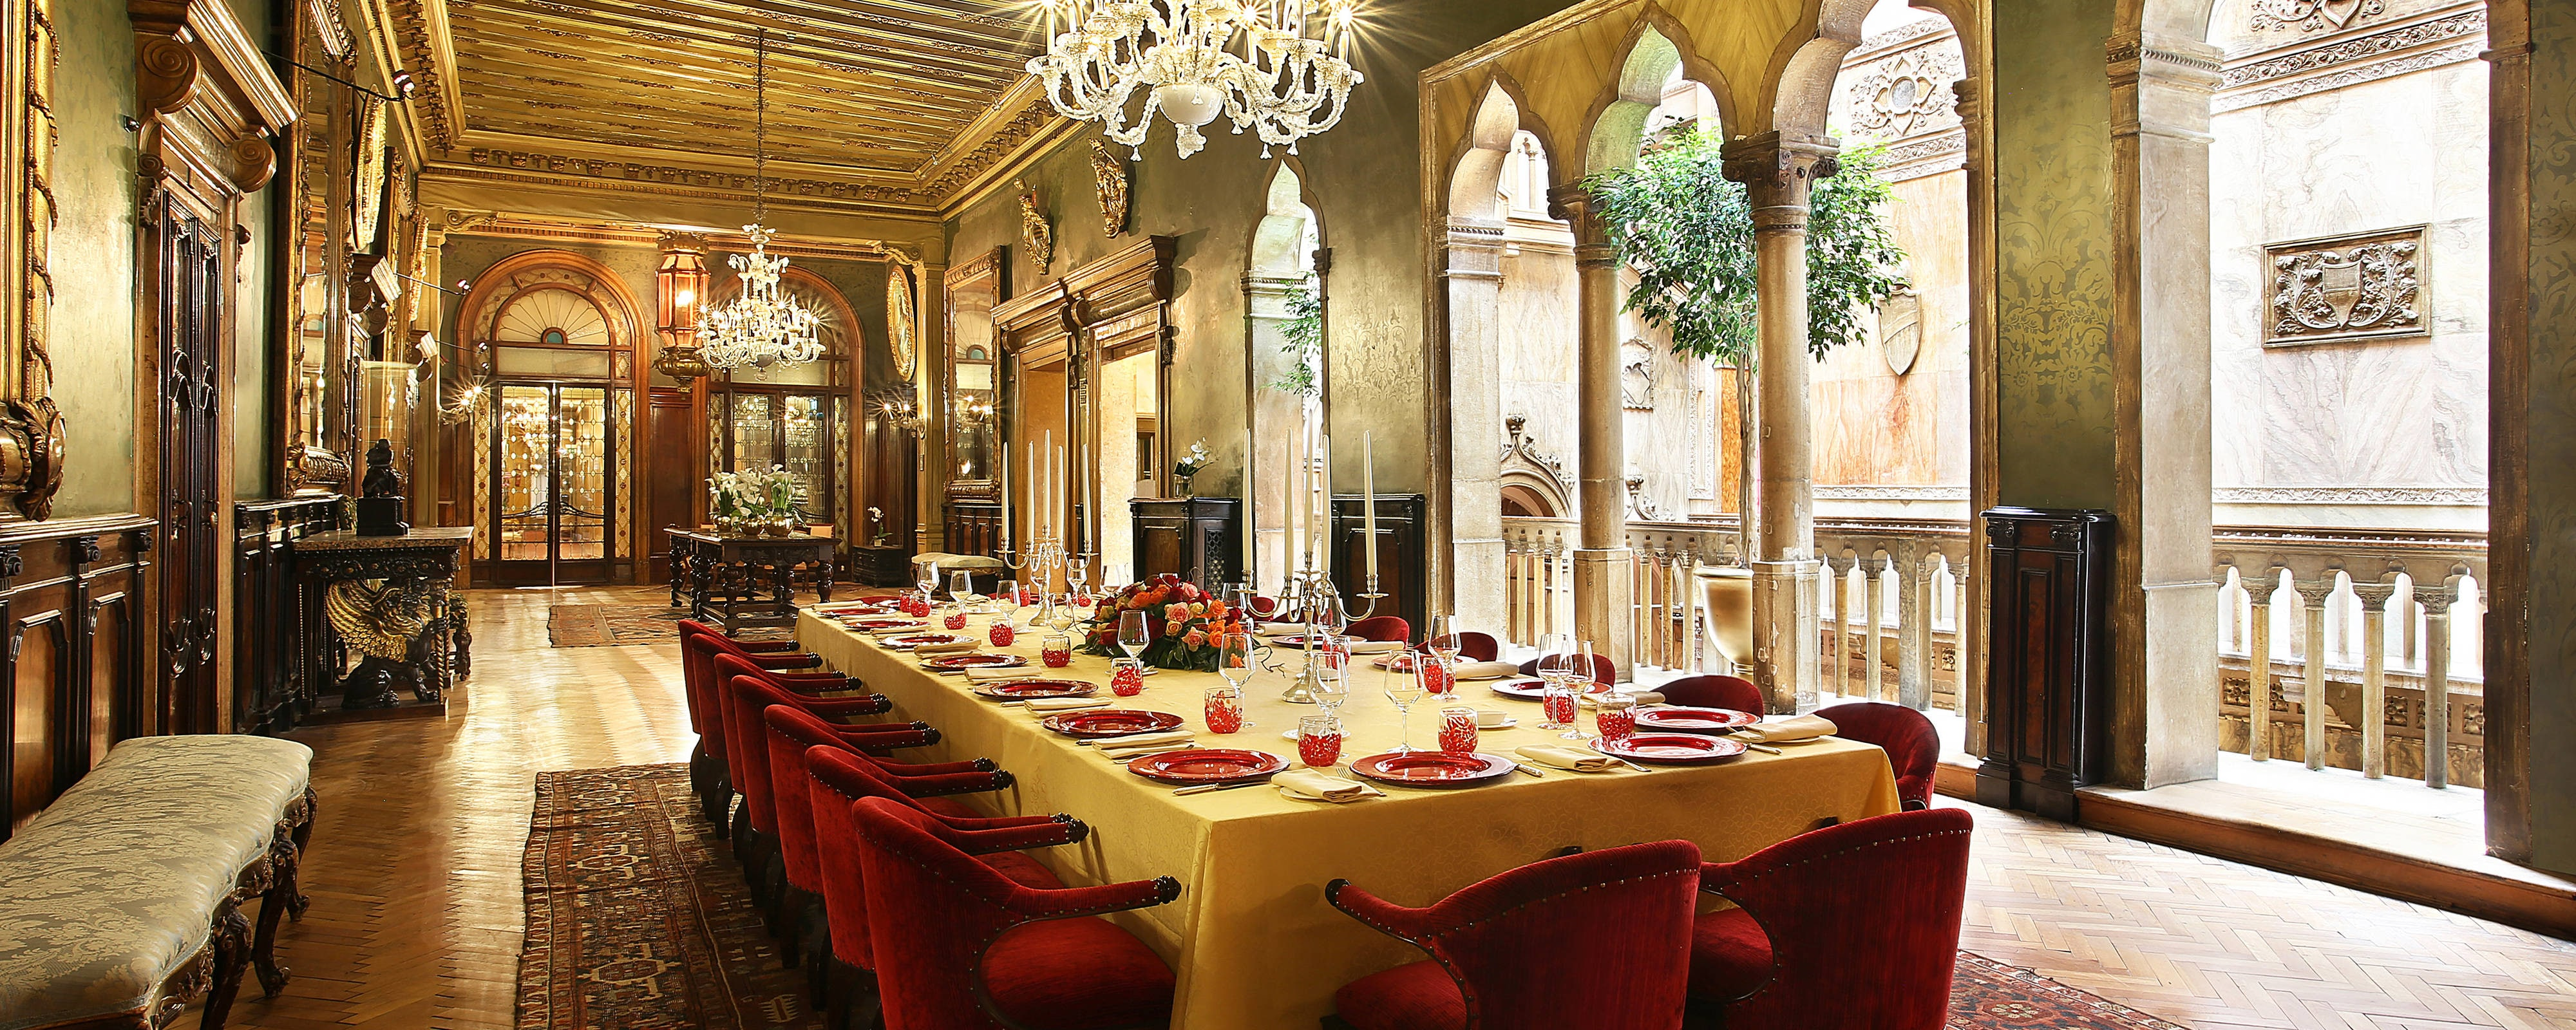 Piano Nobile Banquet